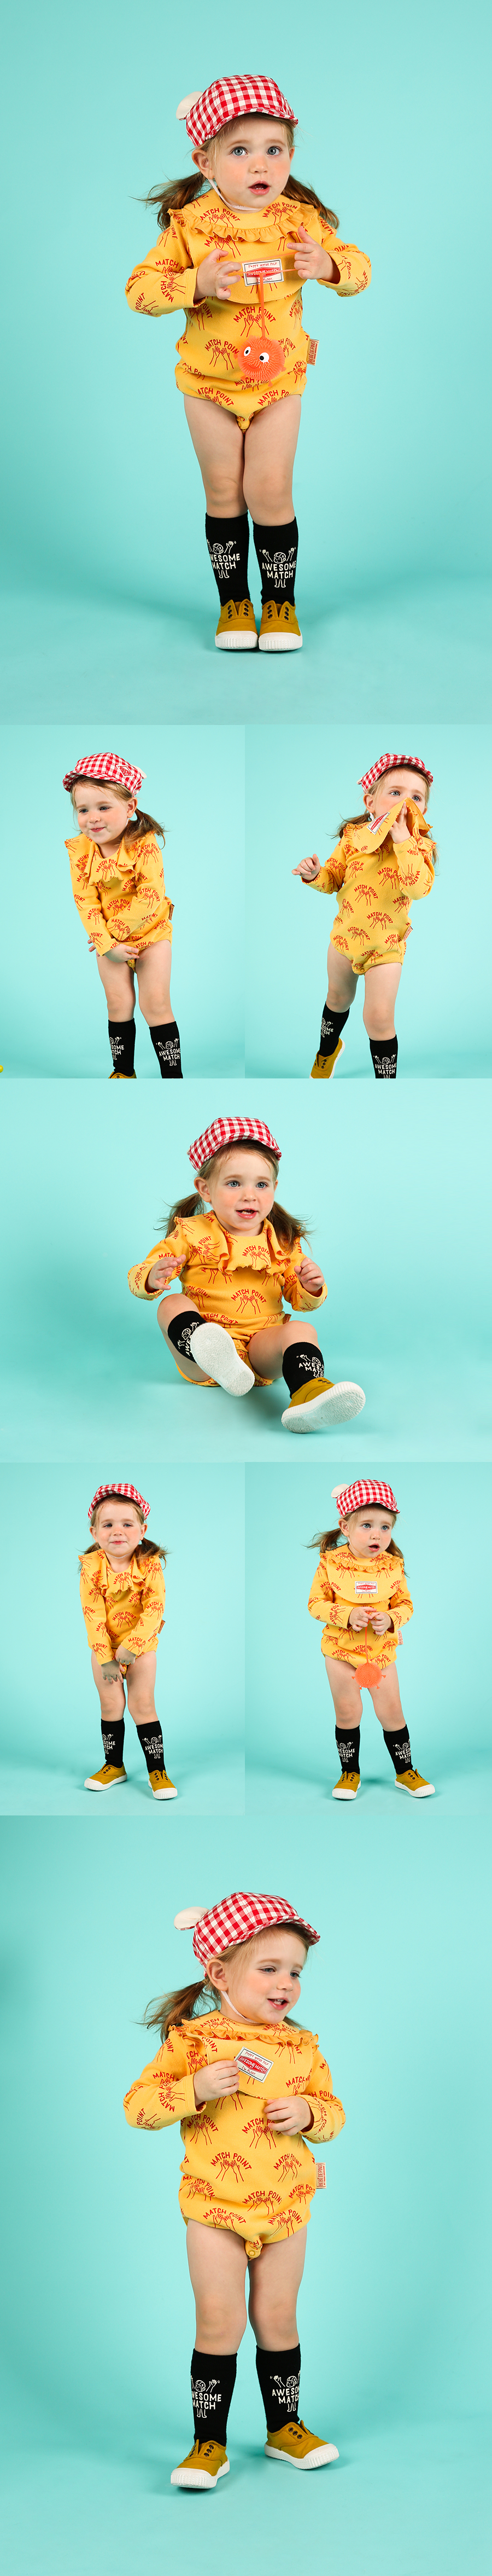 Multi match point baby bodysuit set 상세 이미지